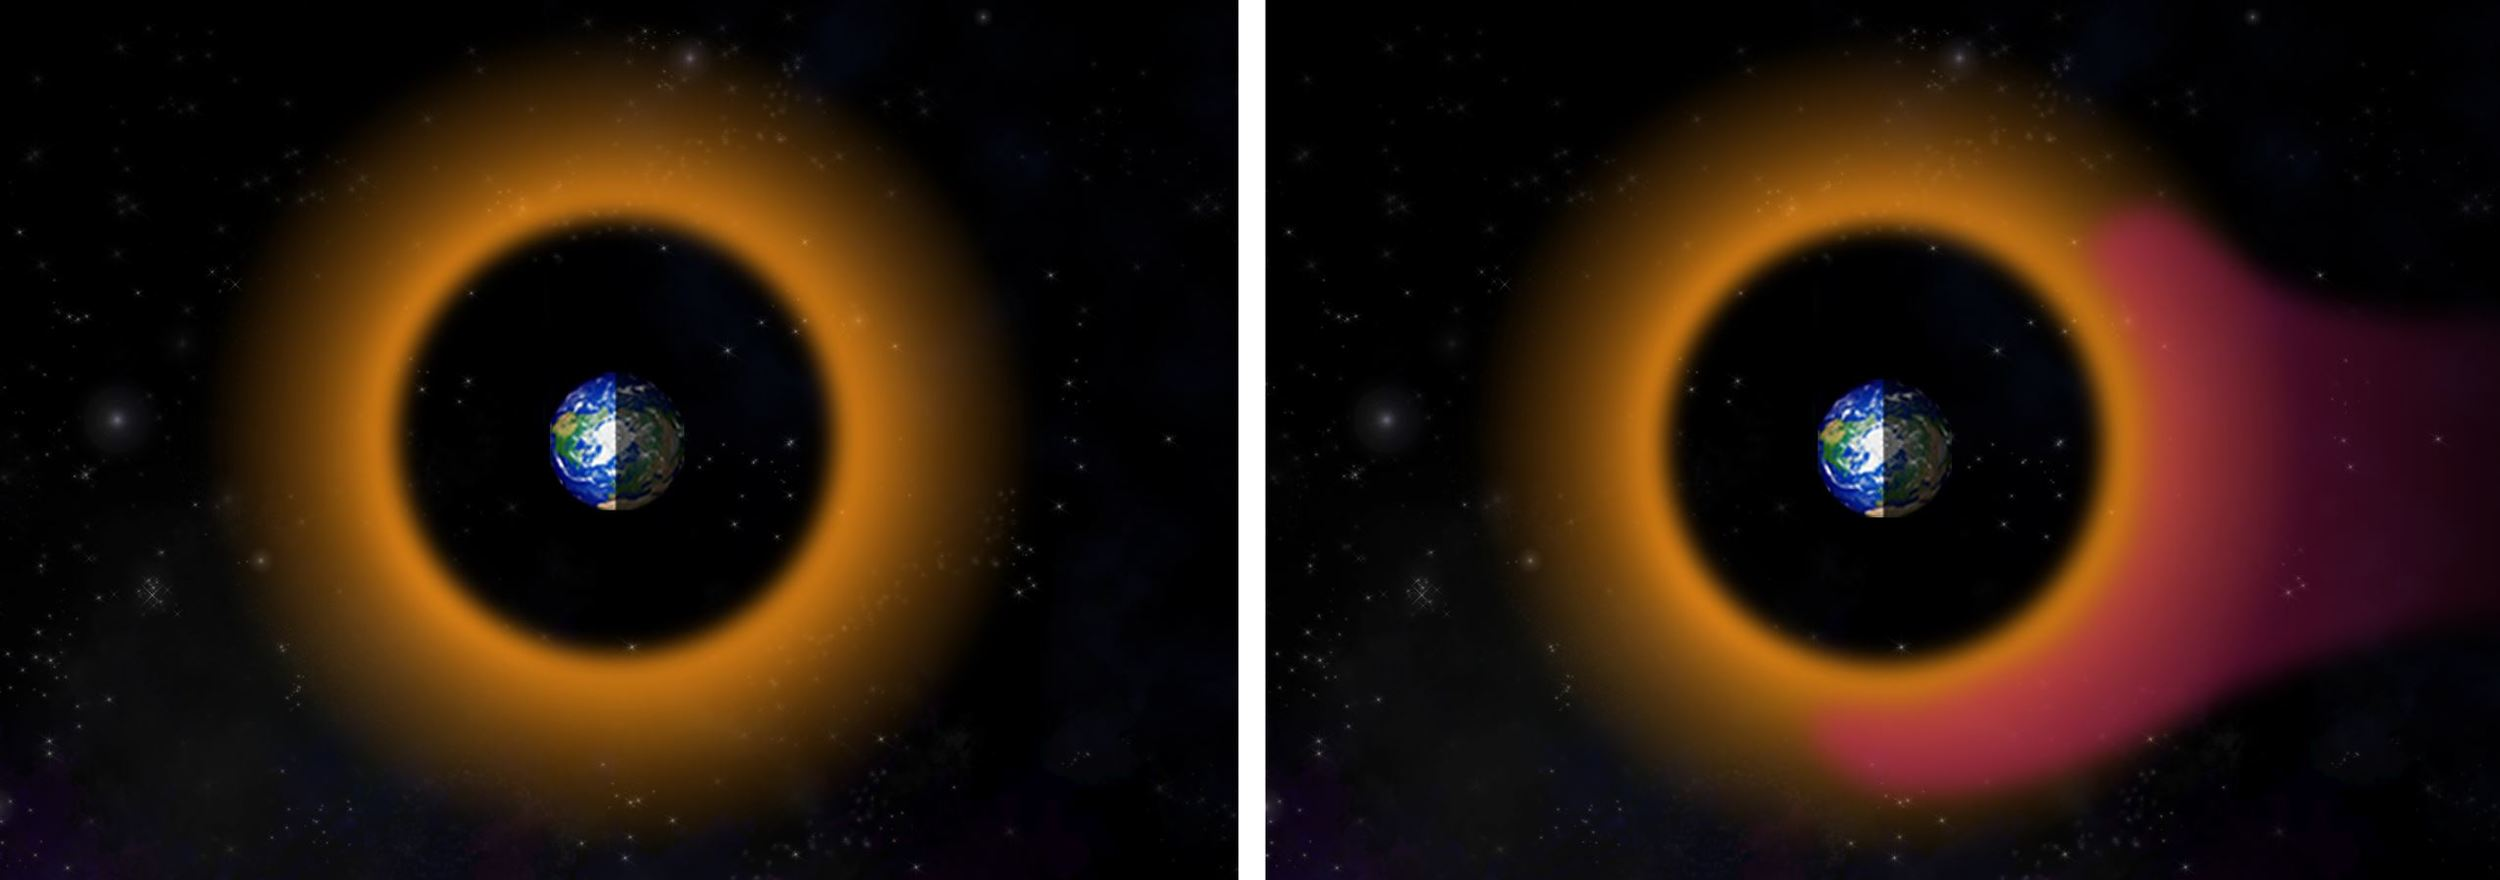 During periods when there are no geomagnetic storms affecting the area around Earth (left image), high-energy protons (with energy of hundreds of thousands of electronvolts, or keV; shown here in orange) carry a substantial electrical current that encircles the planet, also known as the ring current. During periods when geomagnetic storms affect Earth (right), new low-energy protons (with energy of tens of thousands of electronvolts, or keV; shown here in magenta) enter the near-Earth region, enhancing the pre-existing ring current. - Image   Credits: Johns Hopkins APL